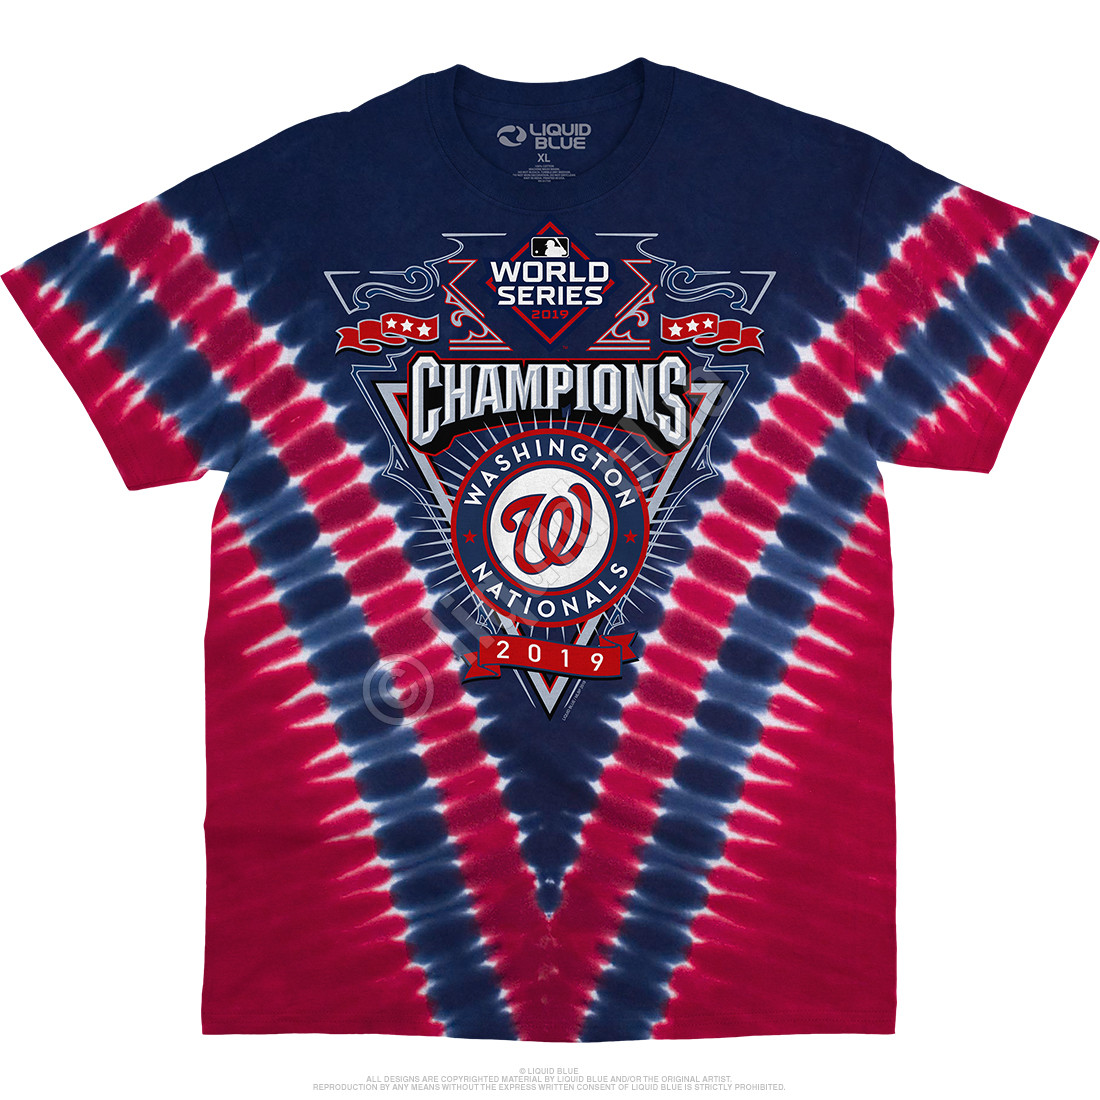 Washington Nationals World Series Champions V Tie-Dye T-Shirt